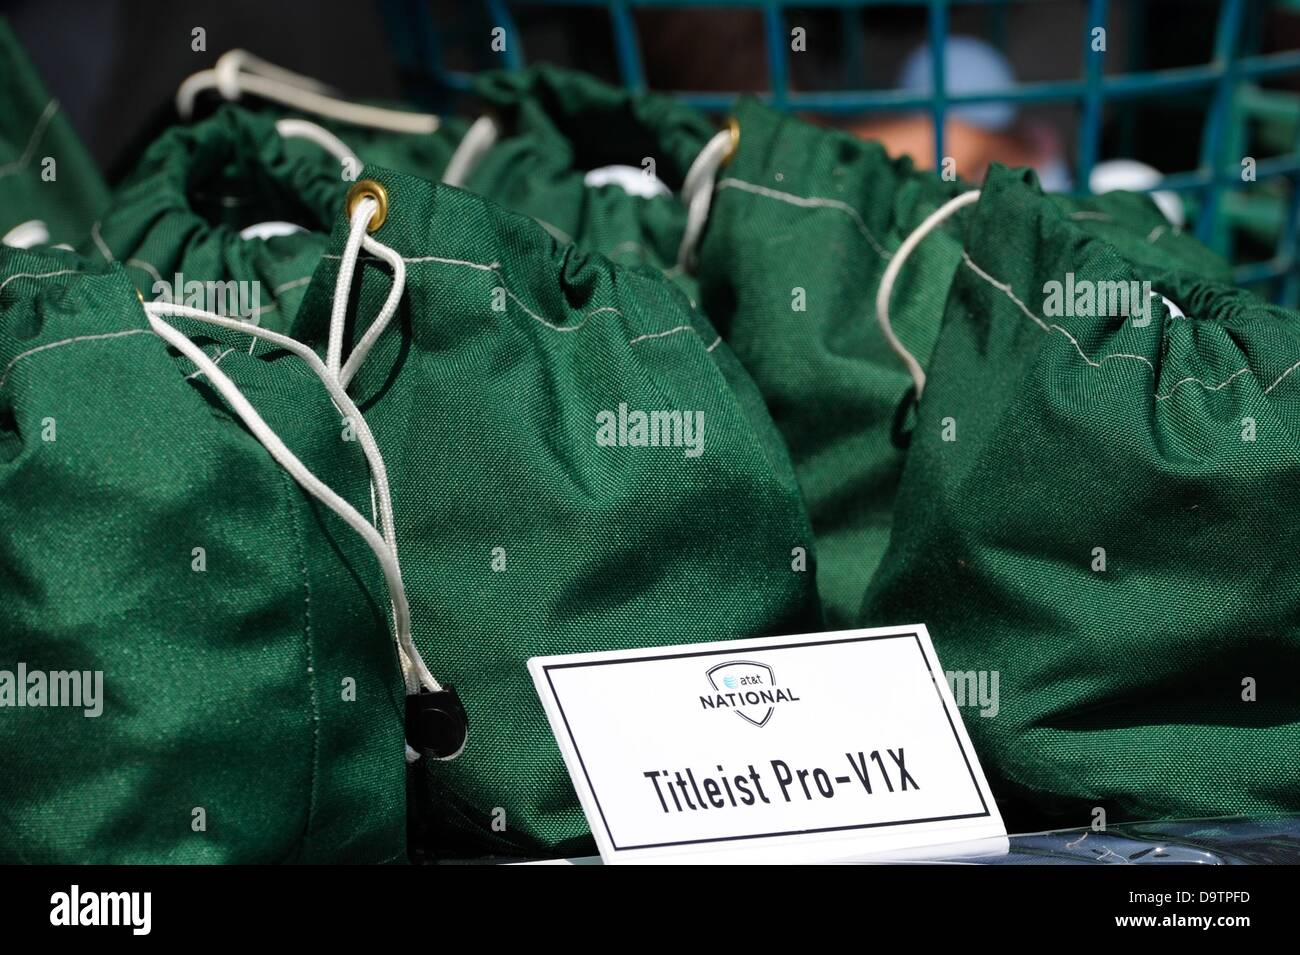 June 26, 2013 - Ttileist Pro-V1X ball bags await players during Pro-Am play at Congressional Country Club in Bethesda - Stock Image